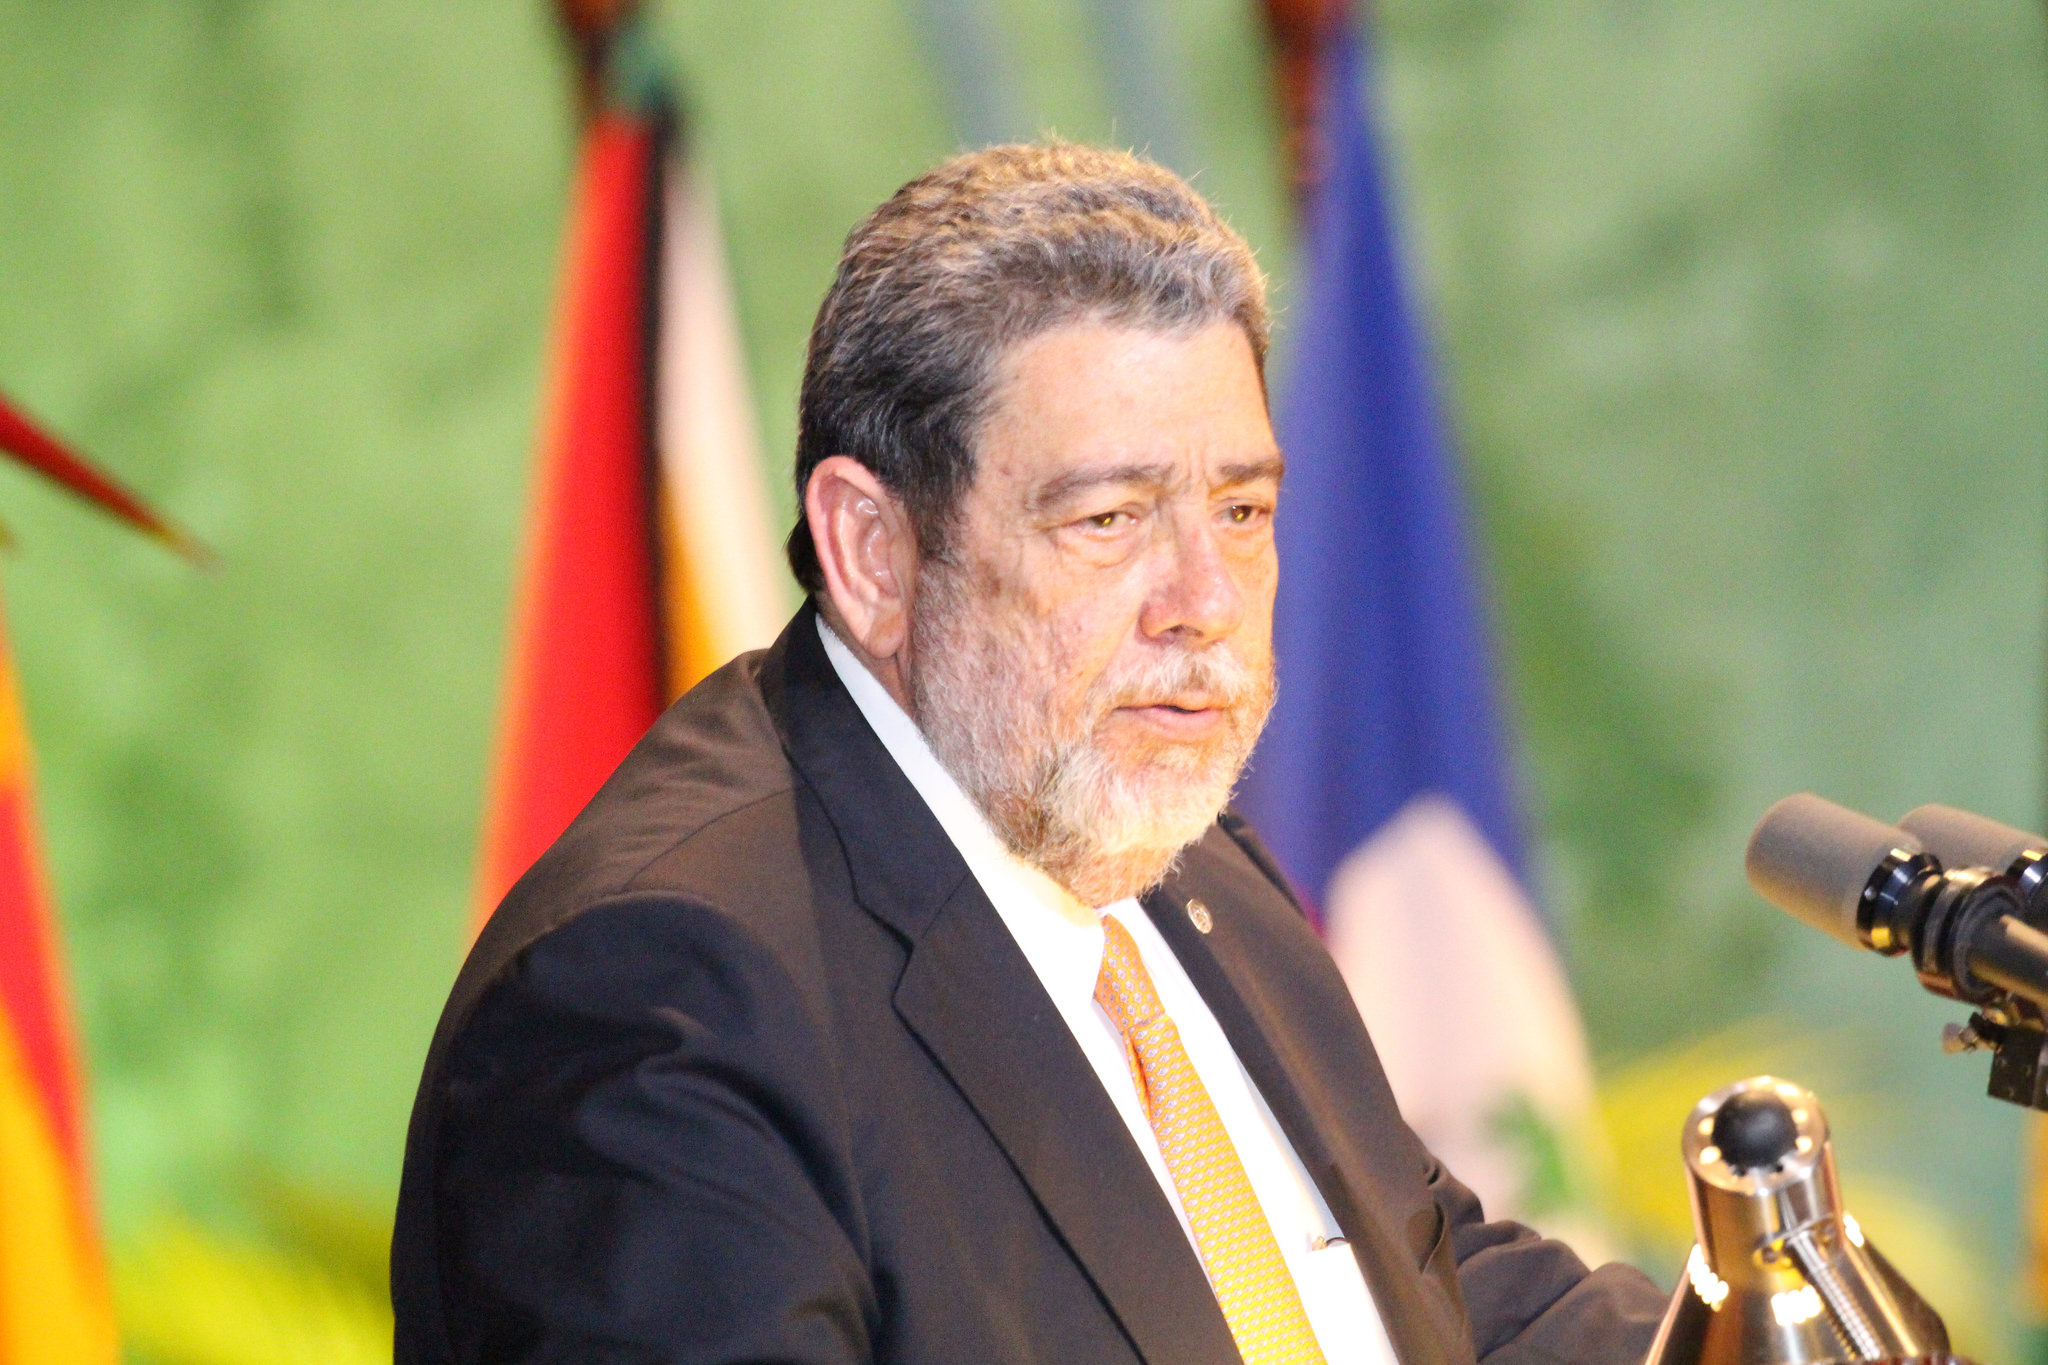 Photo of Ageing, NCDS and Technology: SVG Prime Minister tells Community to pay attention